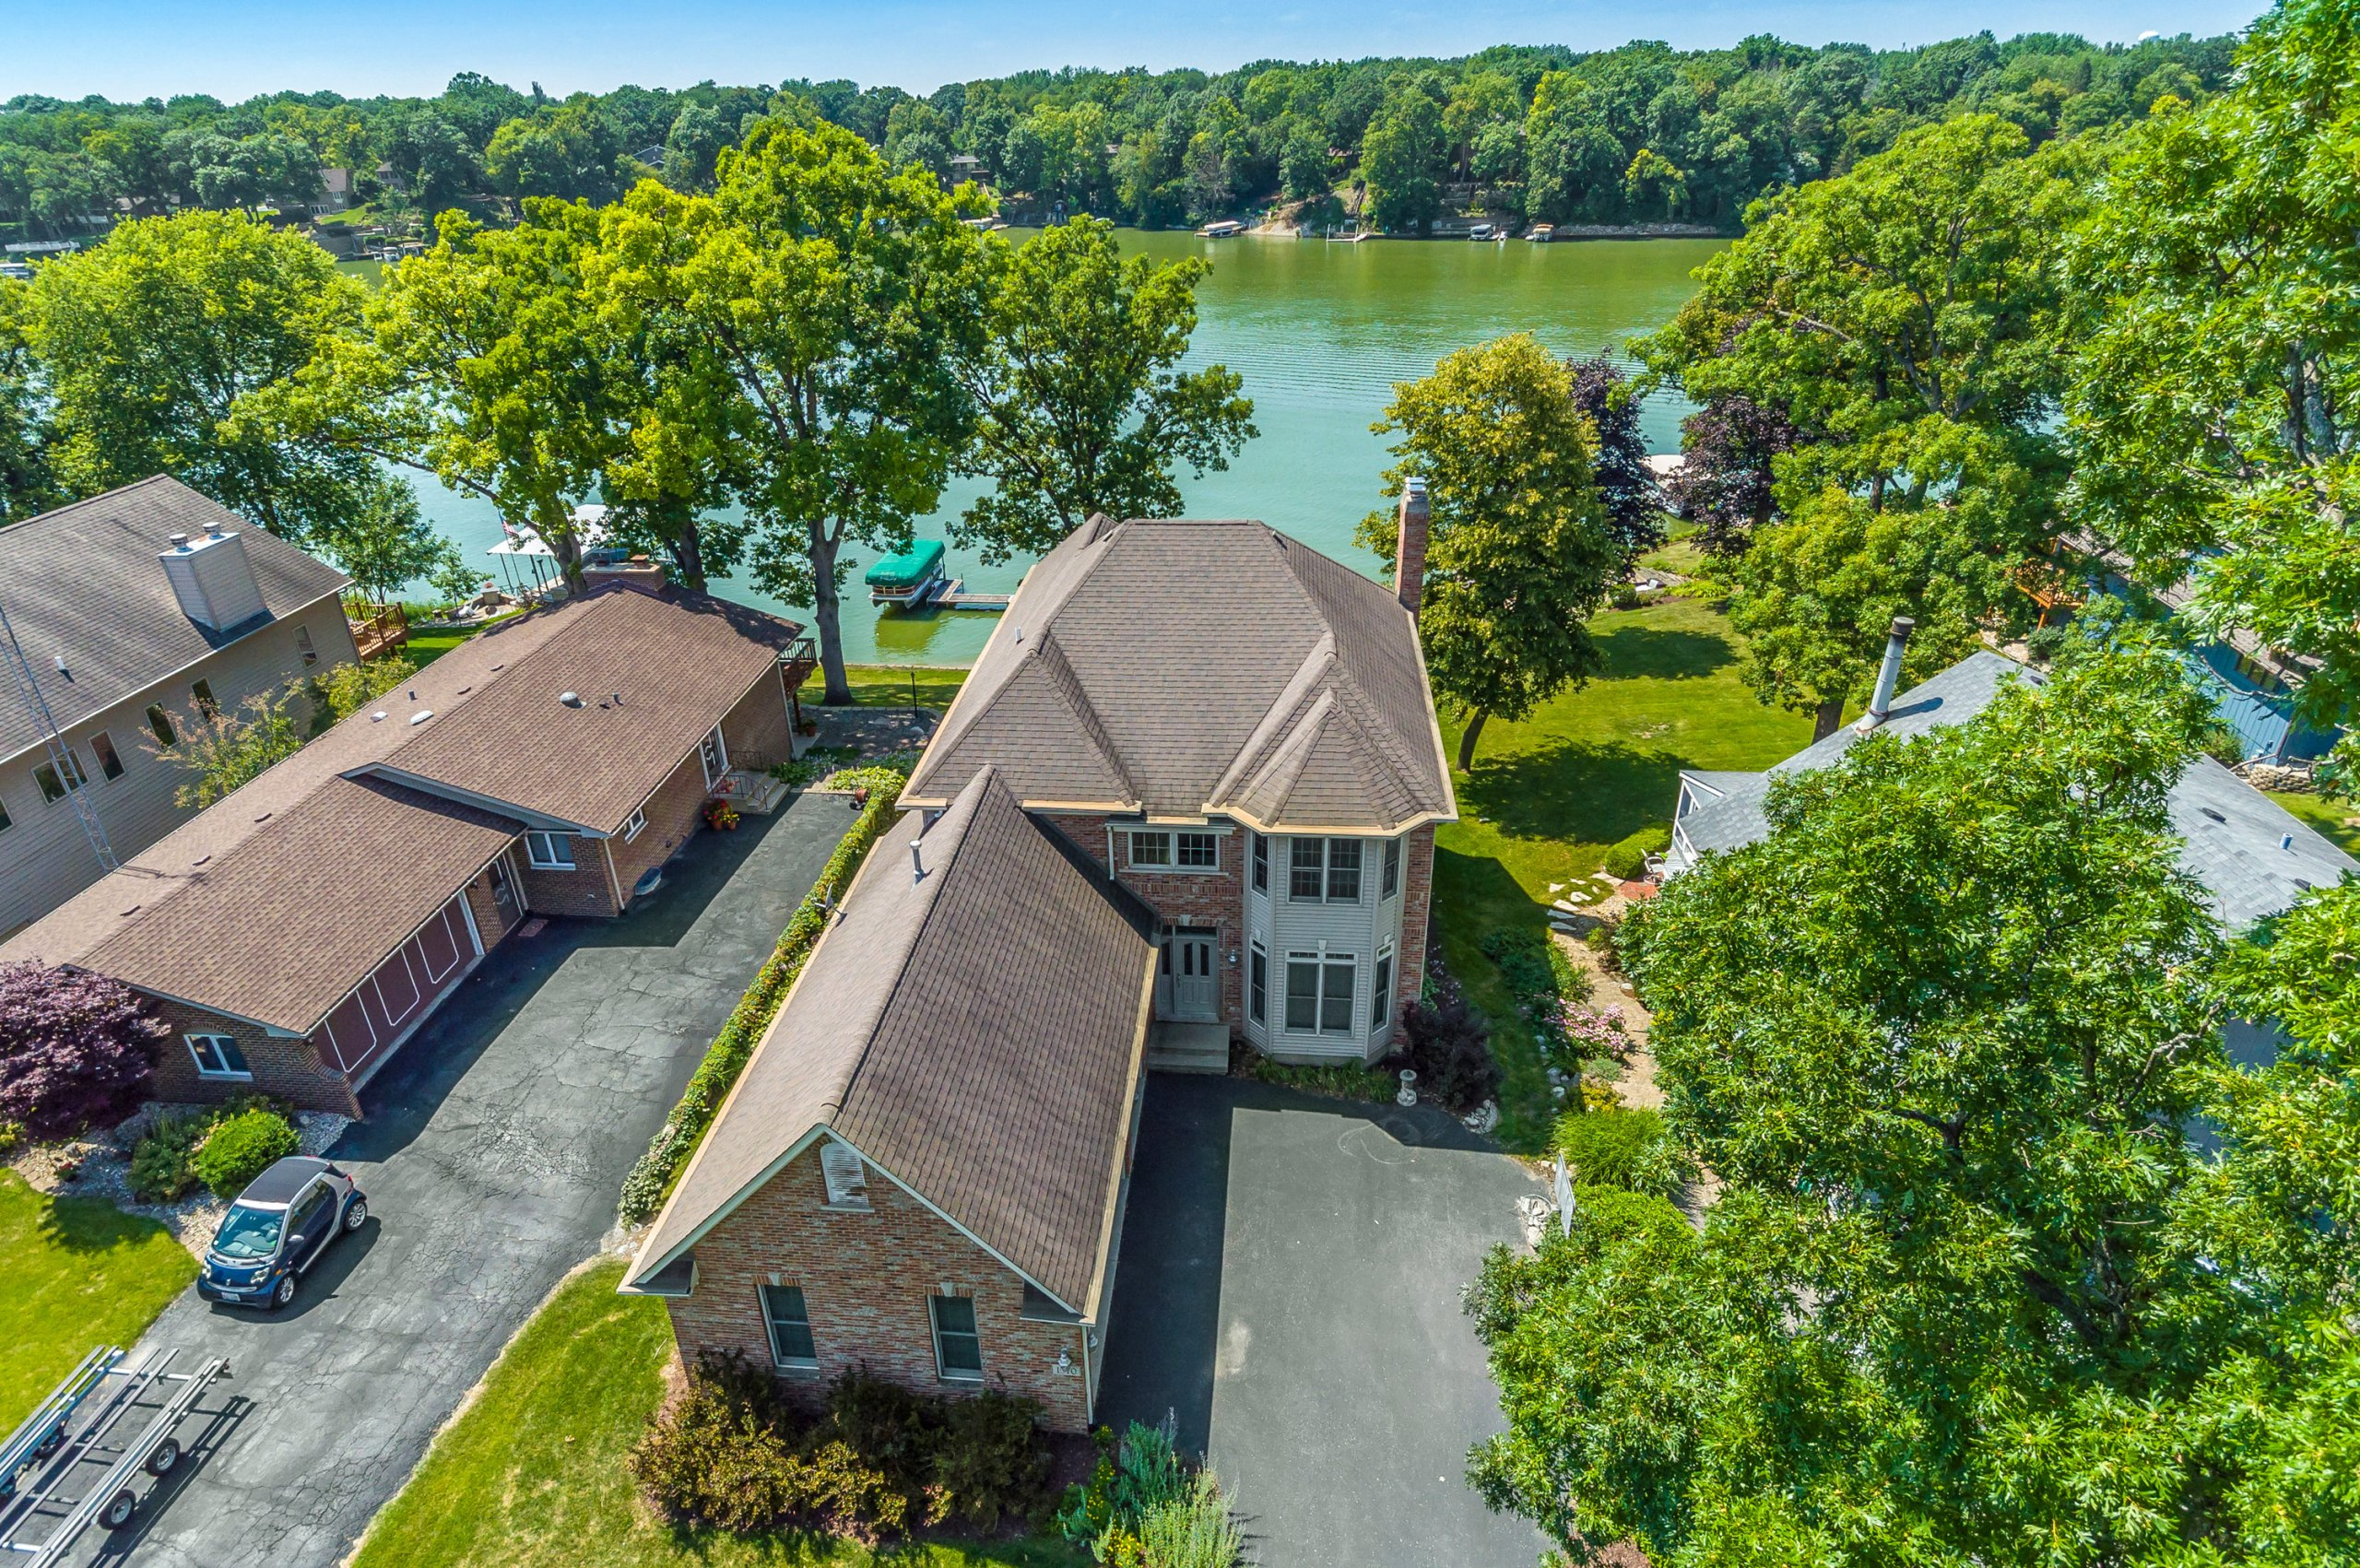 Drone aerial of Lake Holiday home on the lake, Sandwich, Illinois.